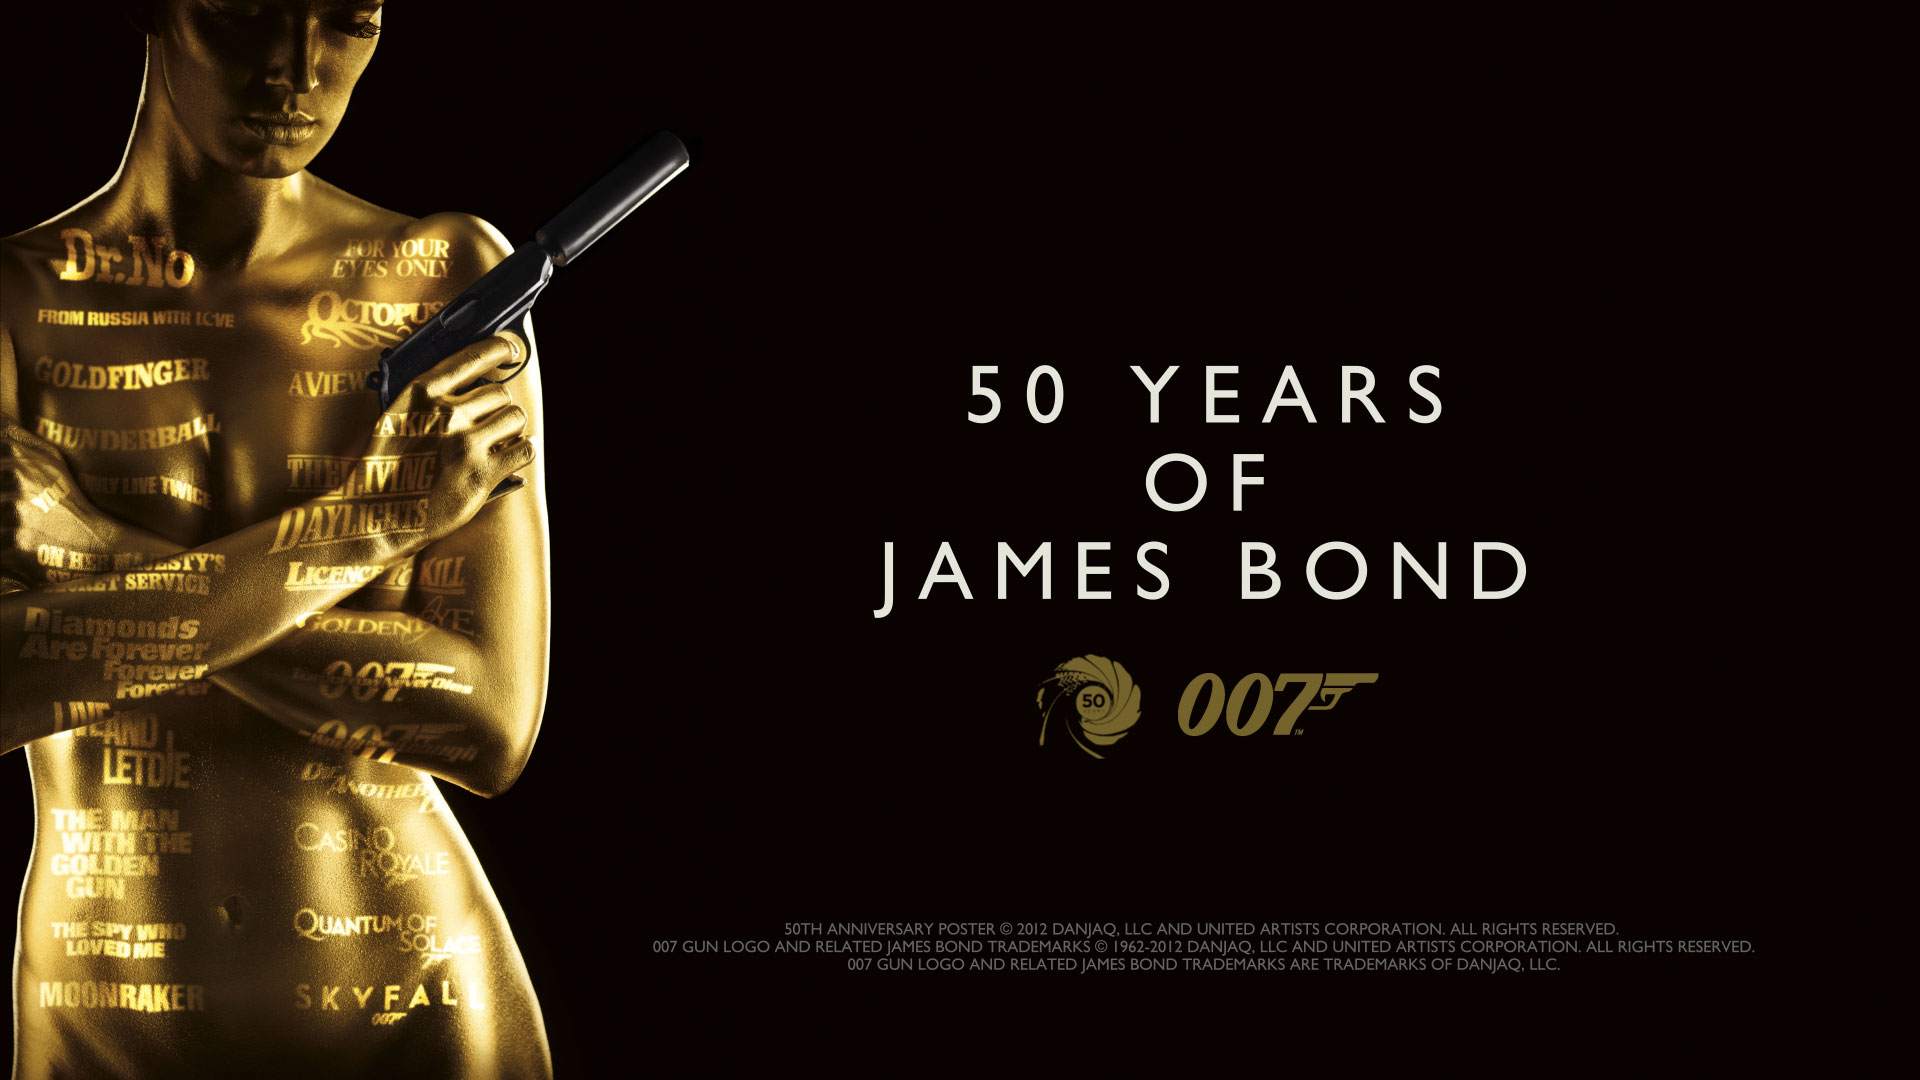 50 jaar james bond blu ray James Bond Box Set   Blu Ray Release 50 jaar james bond blu ray